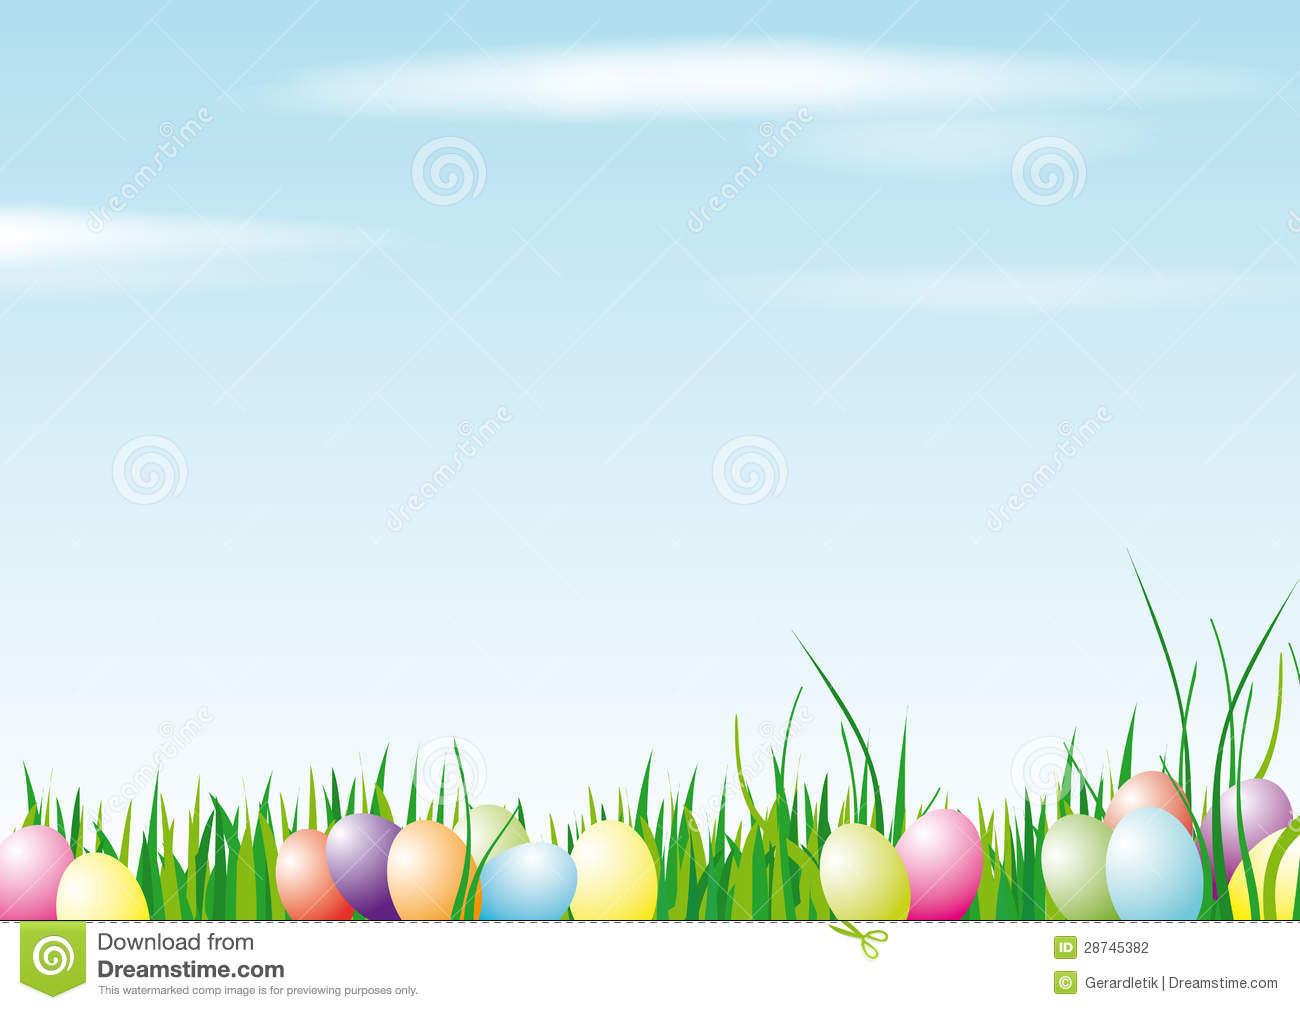 Vector illustration of colored easter eggs on grass with a bright sky ...